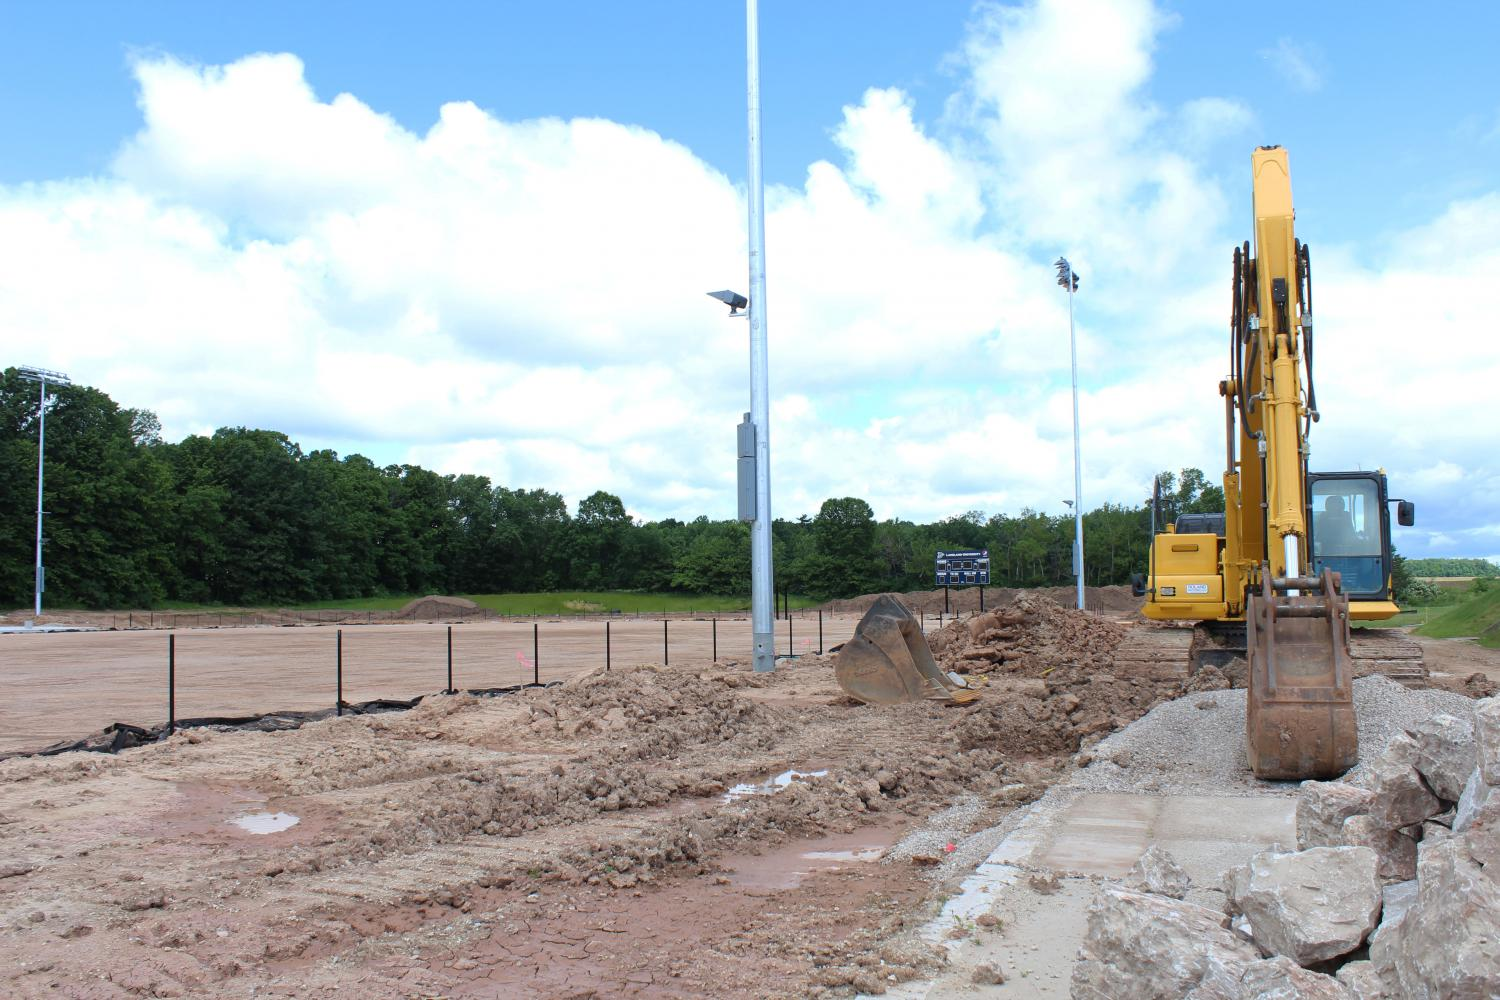 Construction on the new outdoor athletic facility continues.